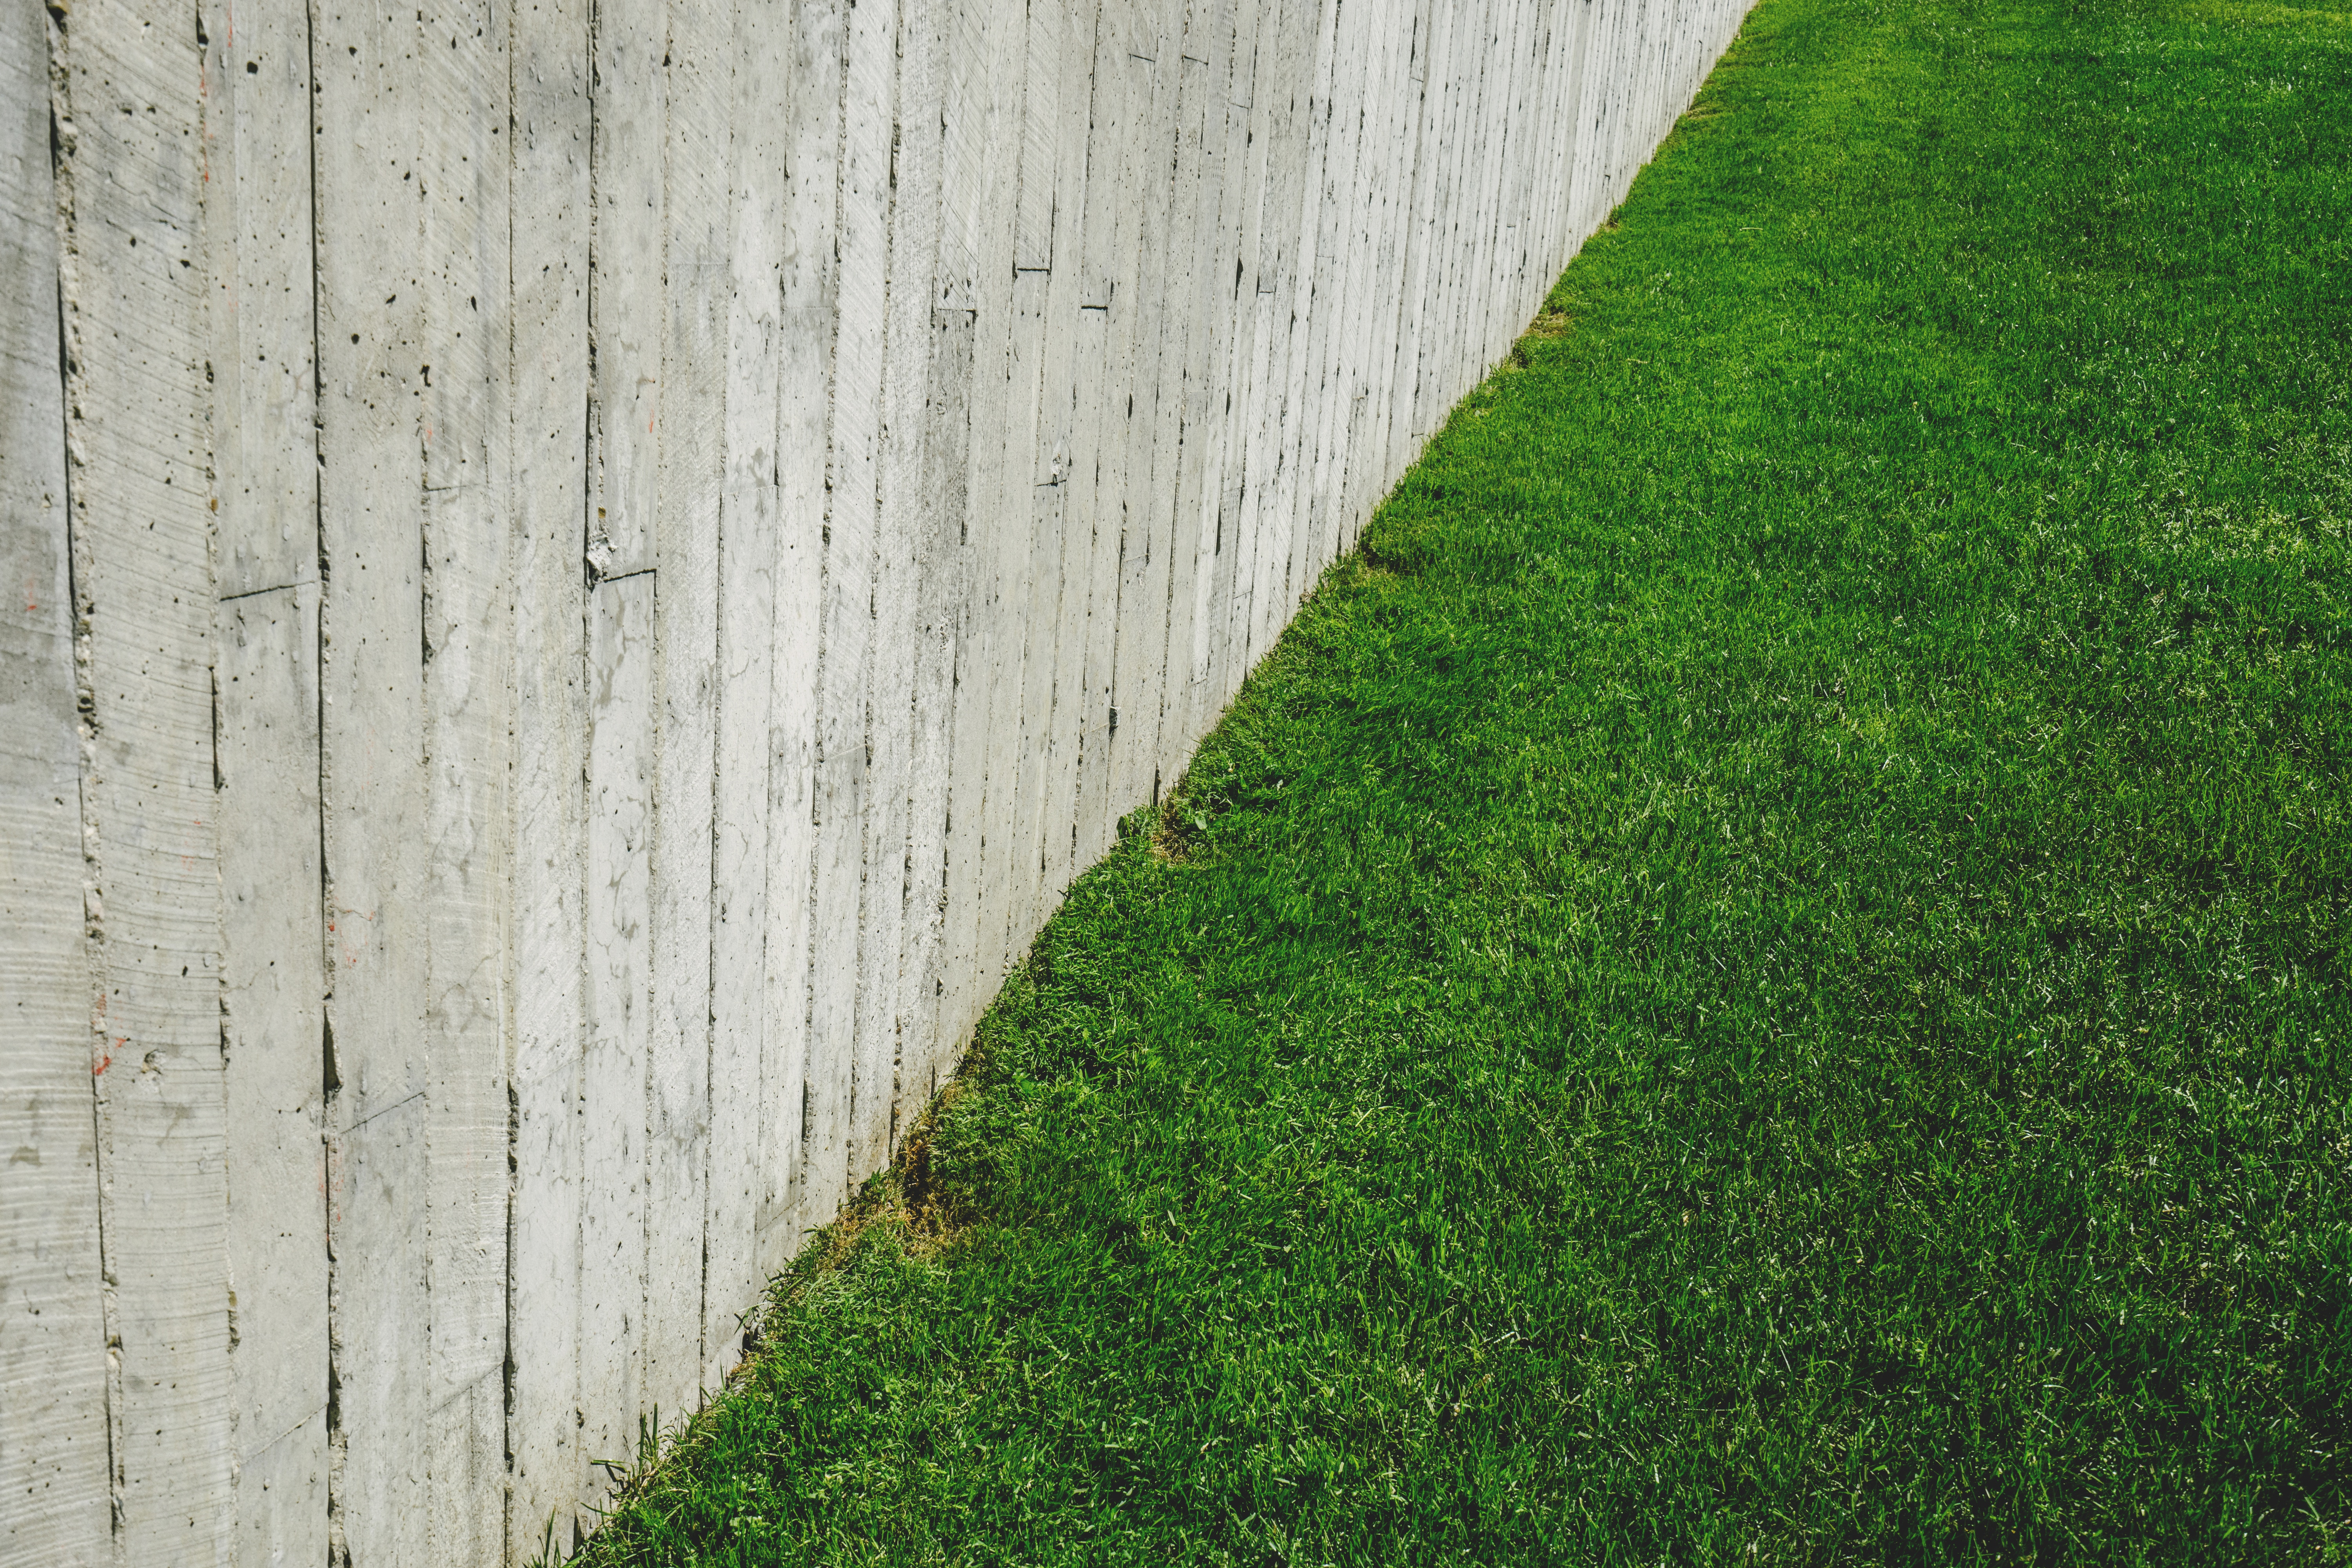 The Grass is Greener on the Instagram Side